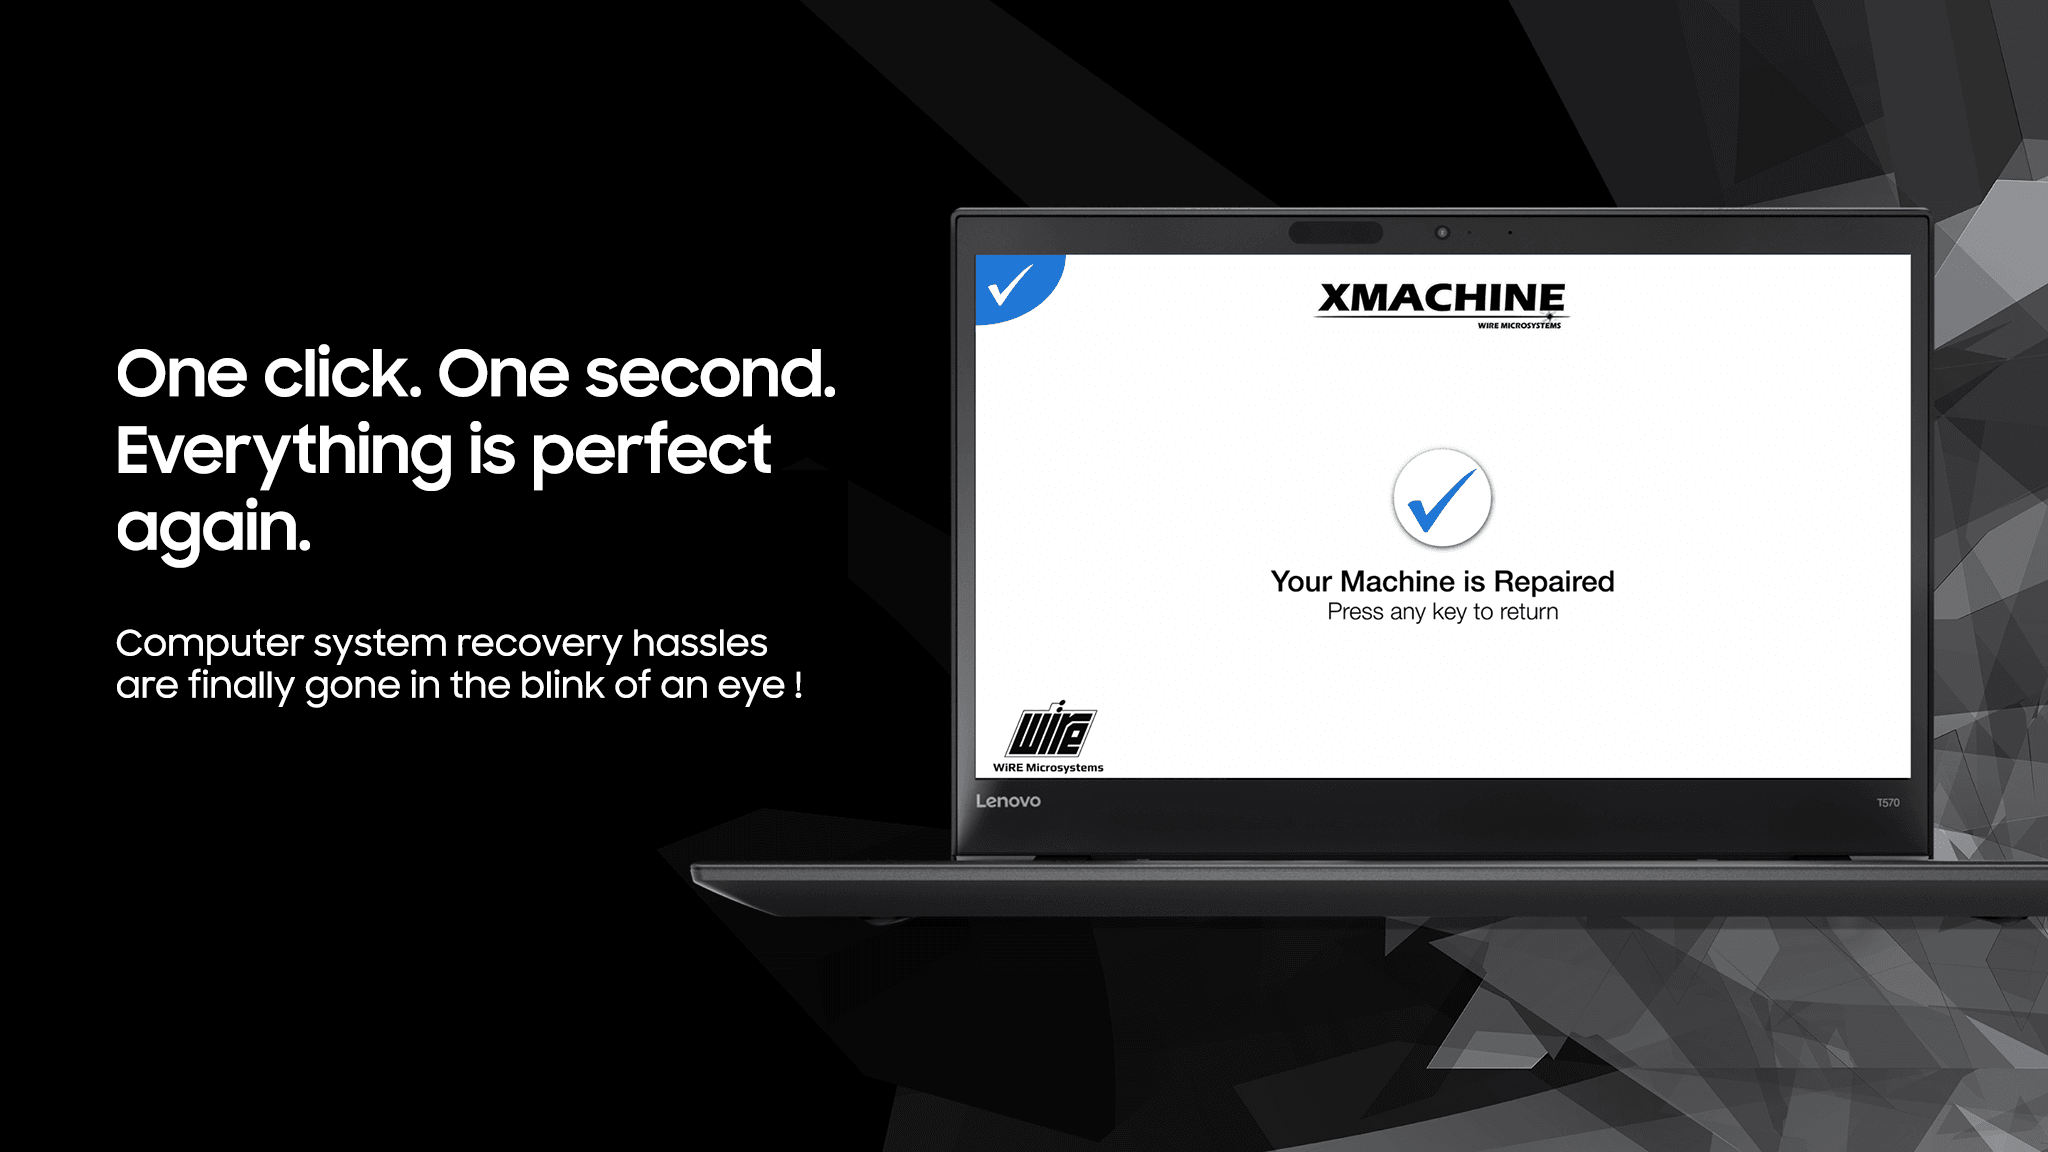 WiRE Microsystems XMACHINE - The World's Fastest System Recovery Solution - One Click. One Second. Everything is perfect again.